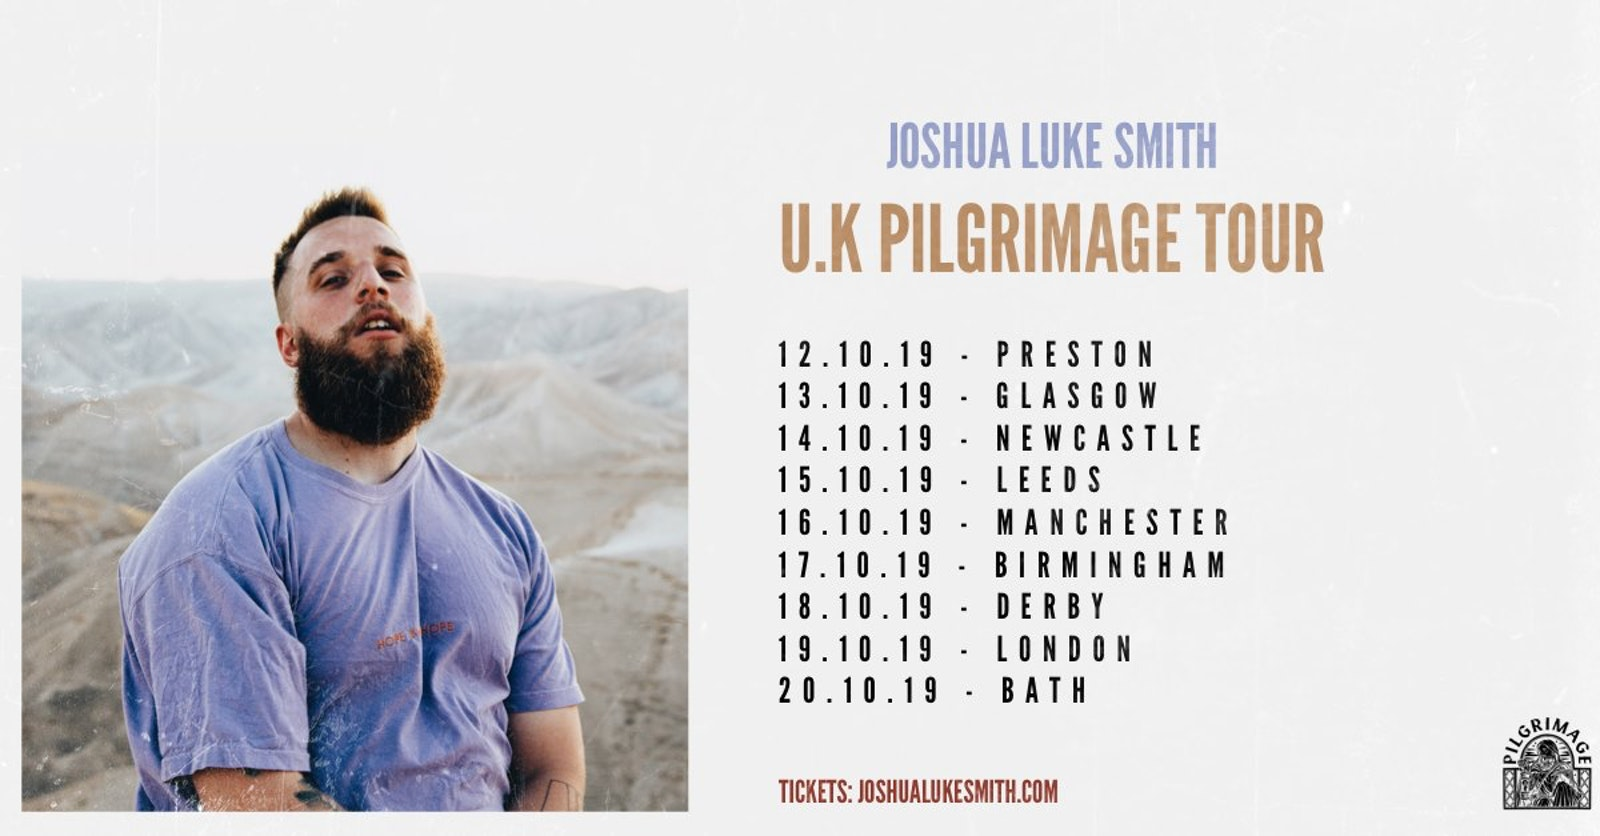 Joshua Luke Smith U.K Pilgrimage Tour